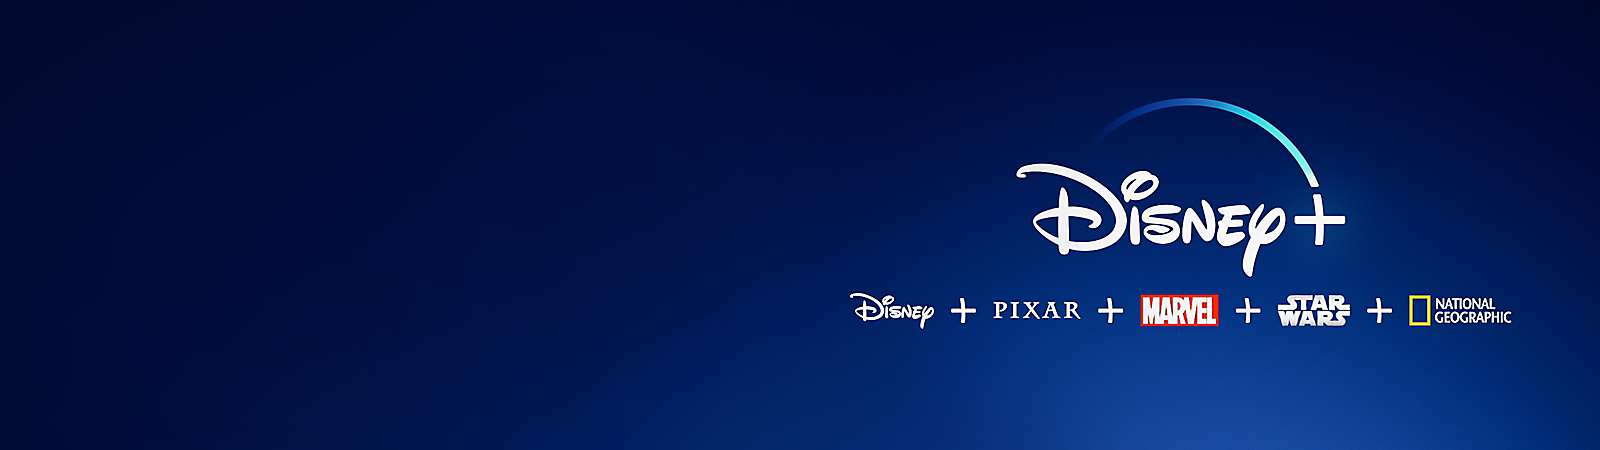 Background image of Disney+